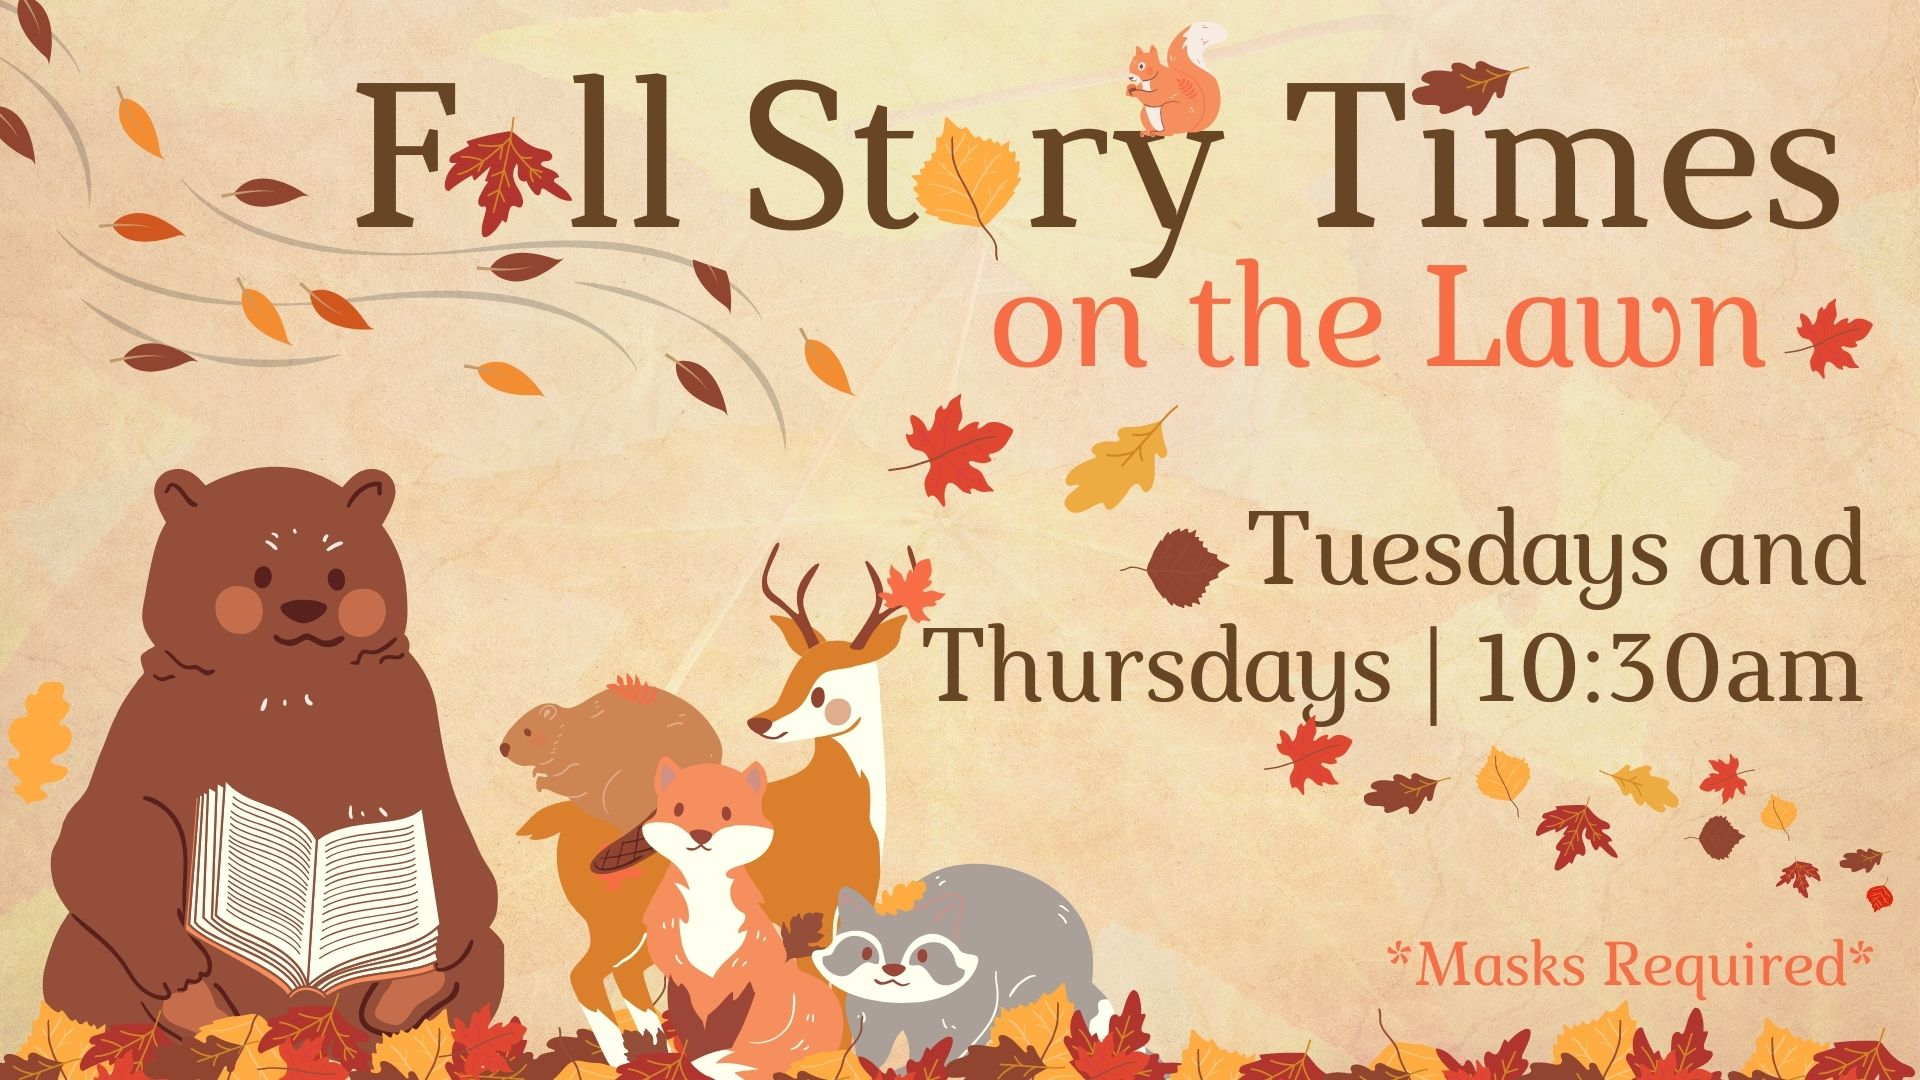 Fall Story Time on the Lawn